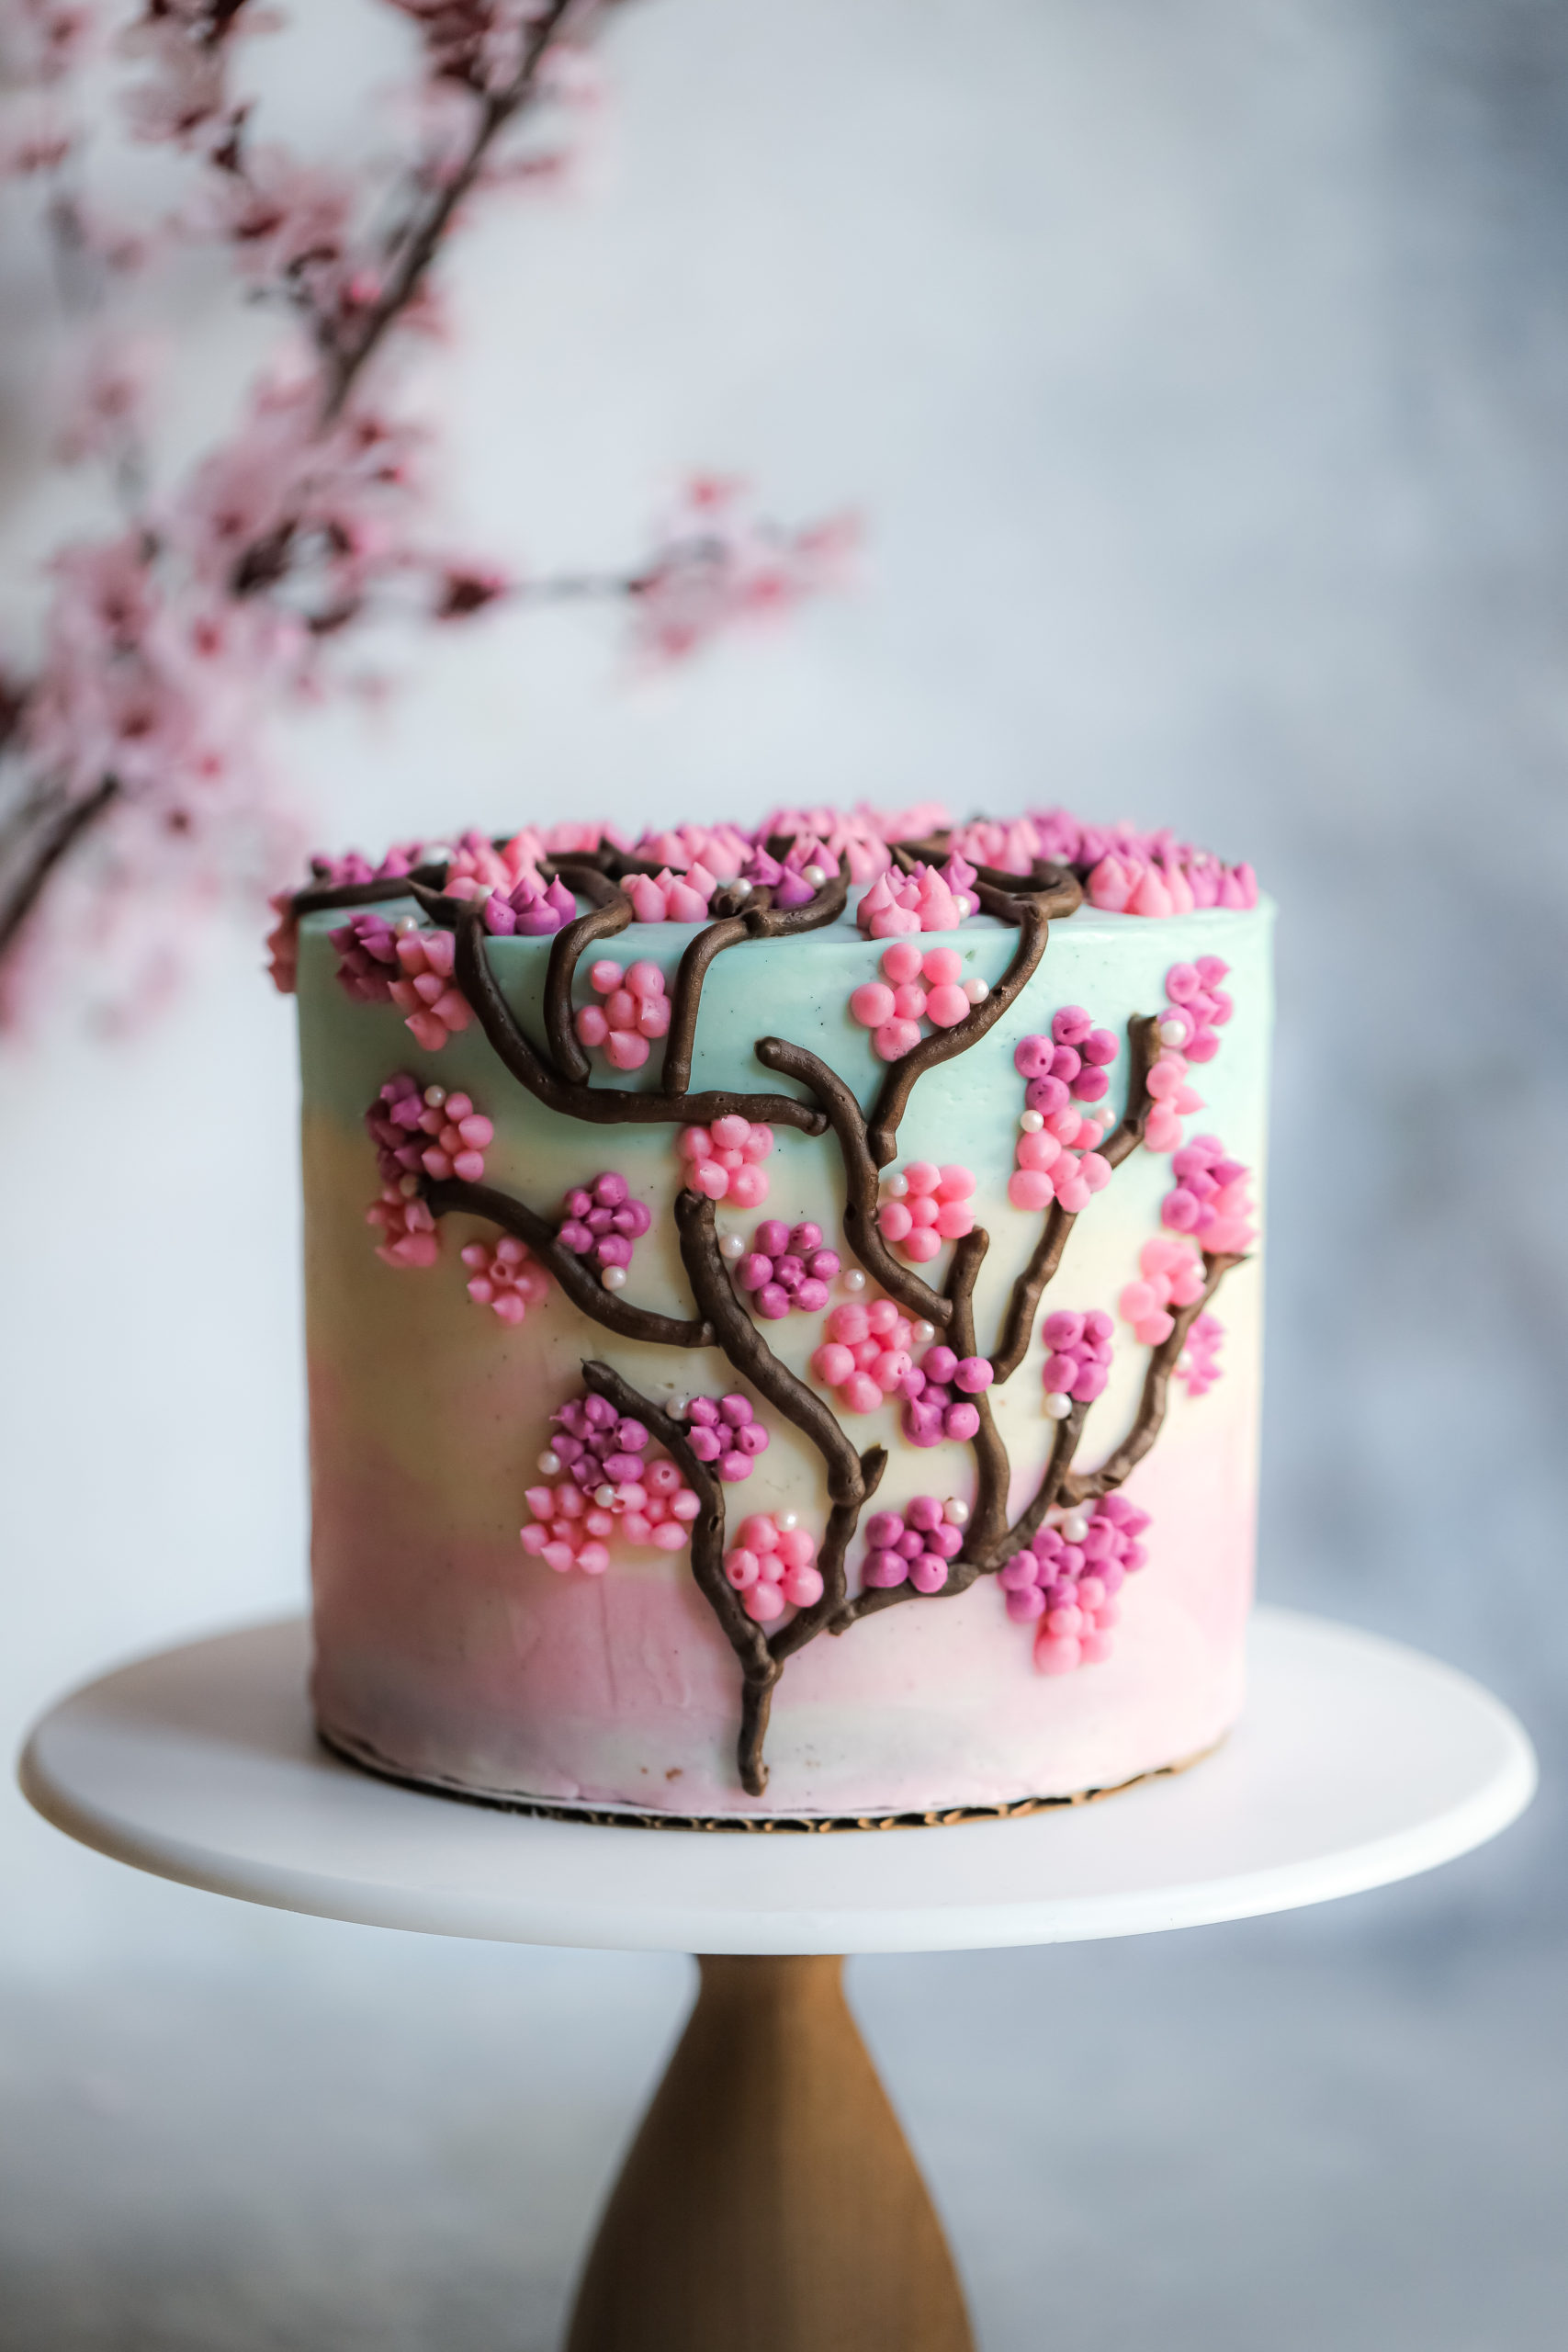 Cherry Blossom Cake with Cherry Blossom Buttercream Frosting